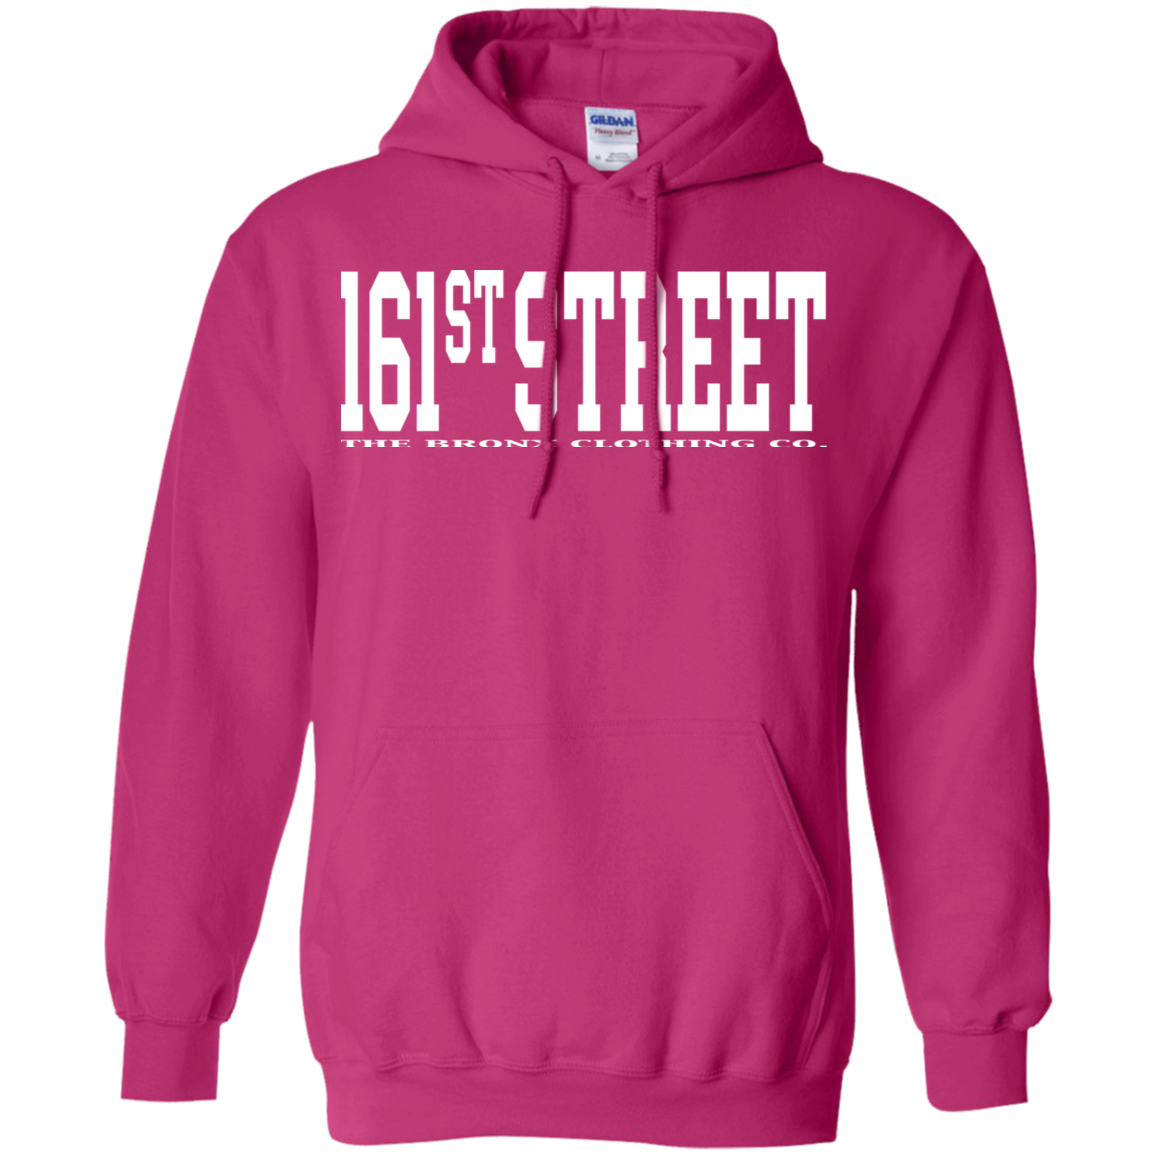 161st Street - Neighborhood Series Hoodie